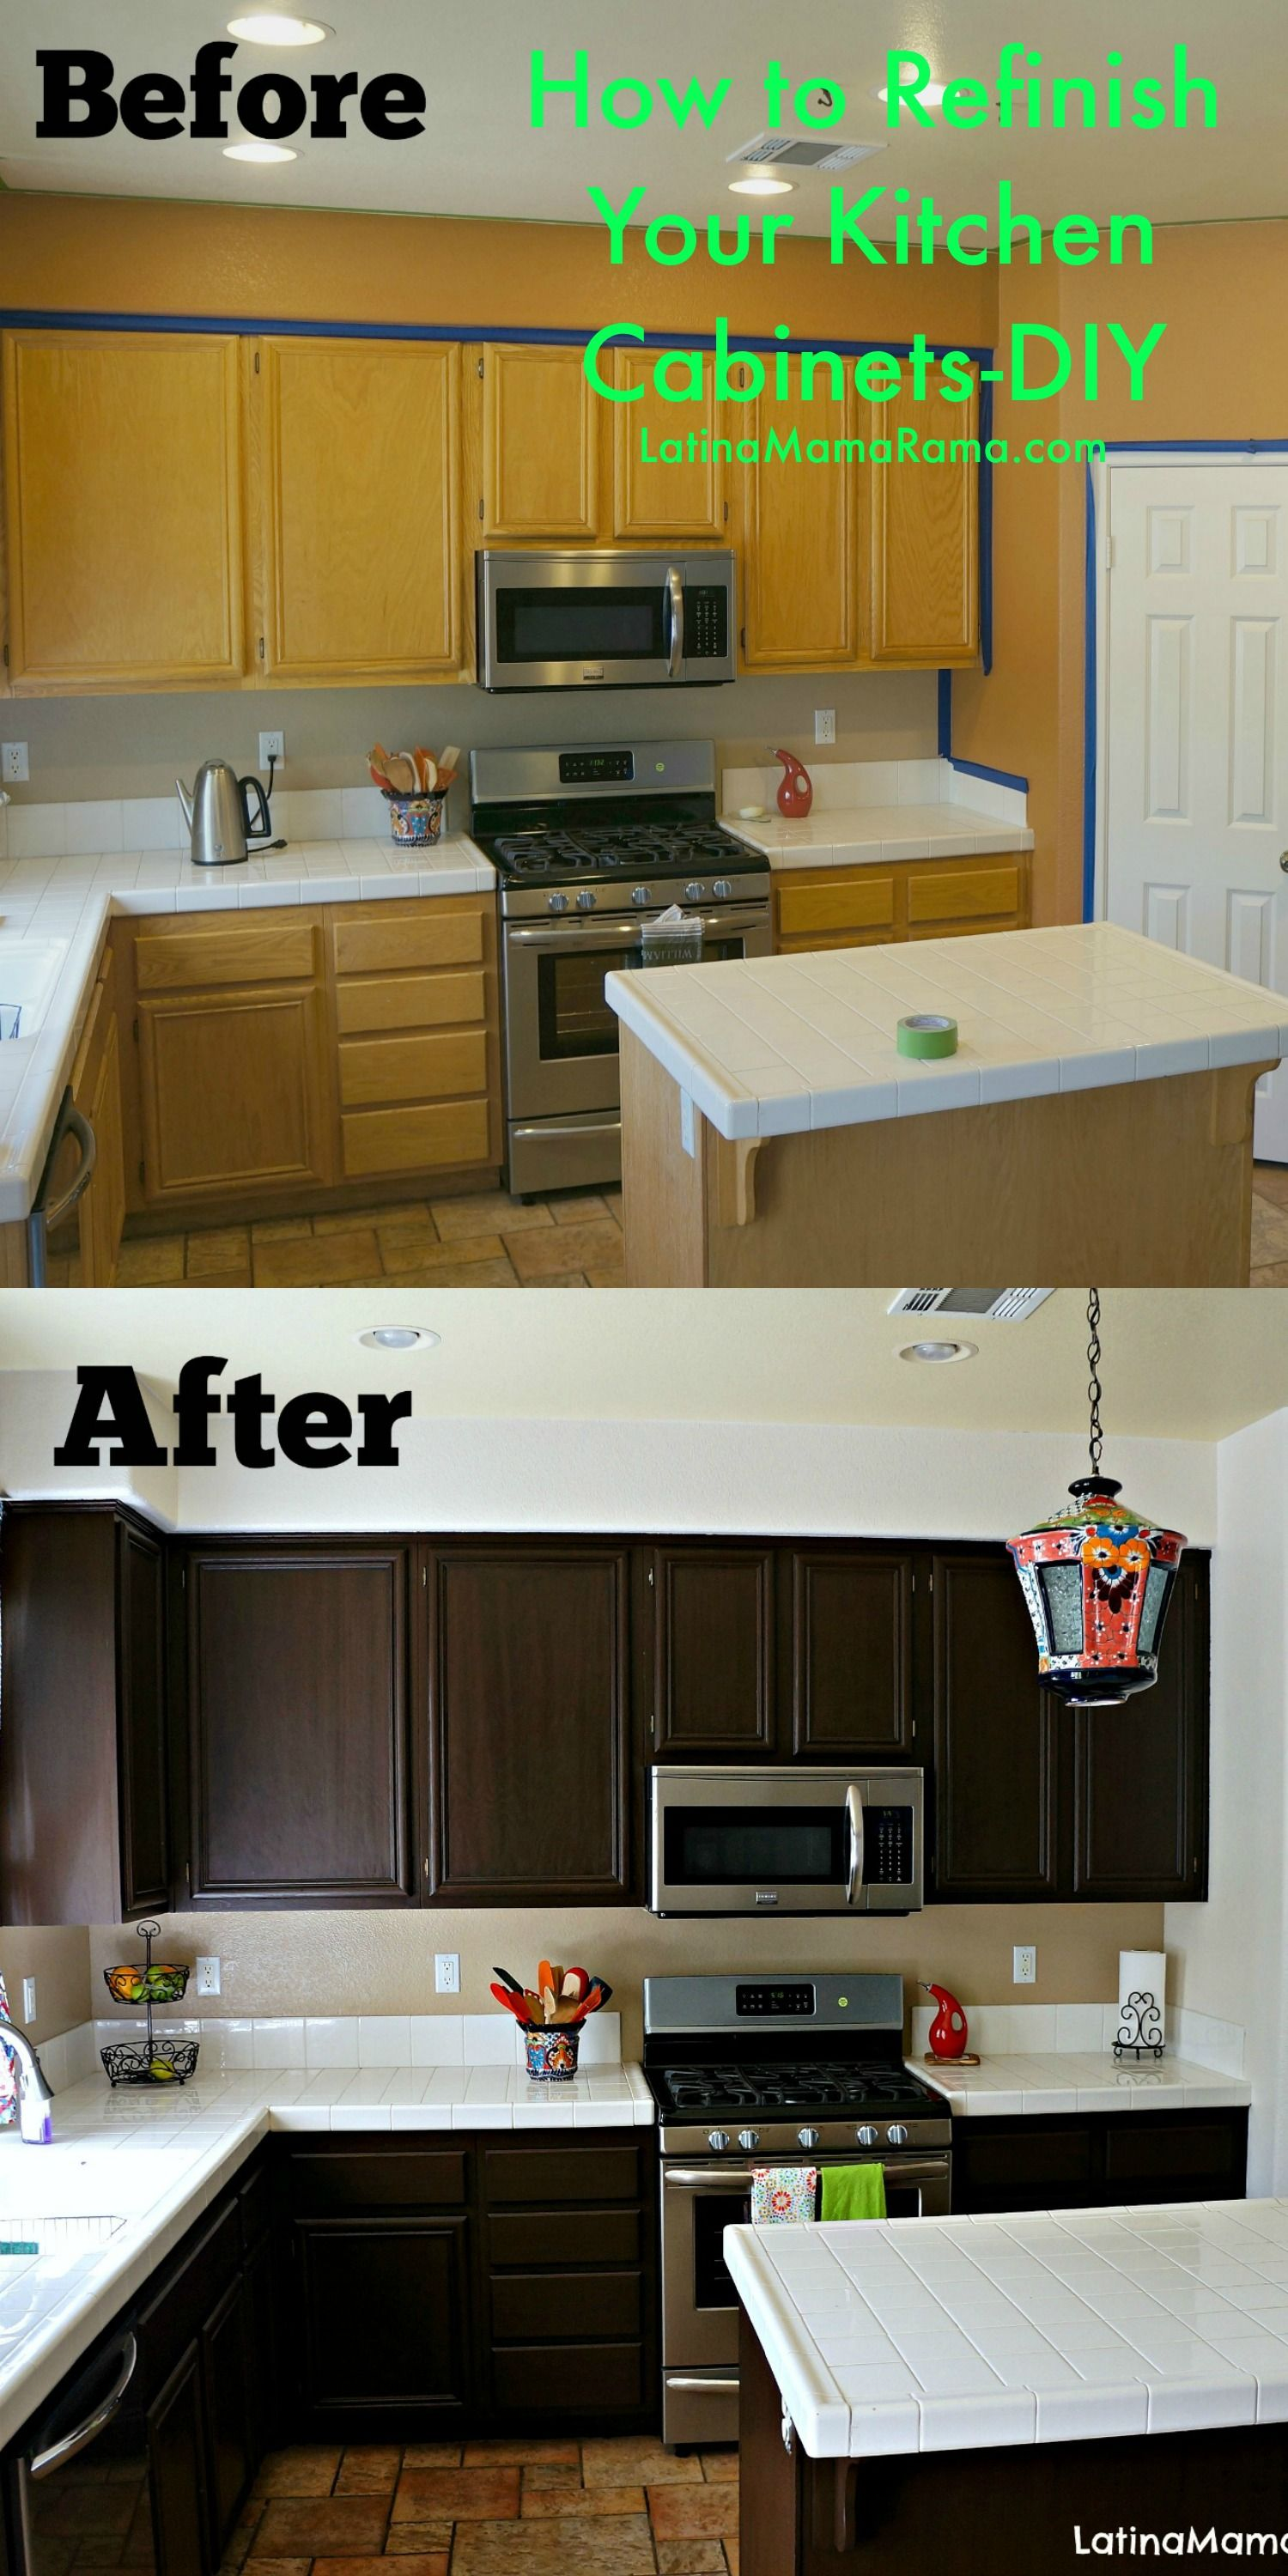 cheap kitchen cabinets How to Refinish Your Kitchen Cabinets